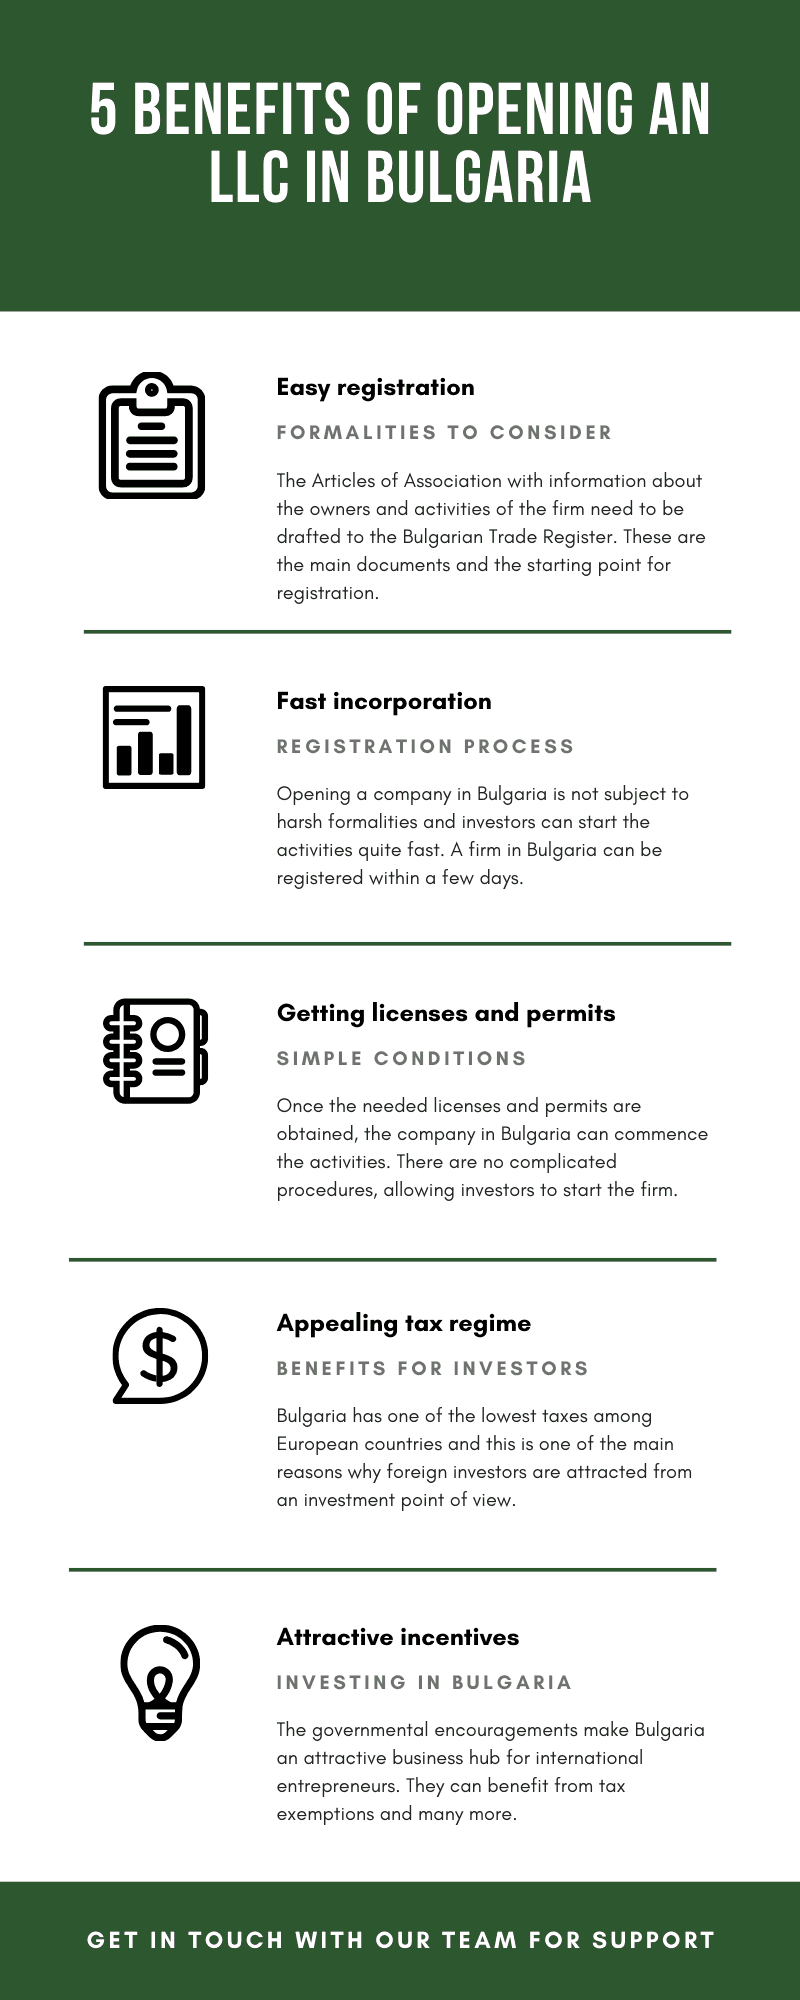 5-benefits-of-opening-an-LLC-in-Bulgaria.png